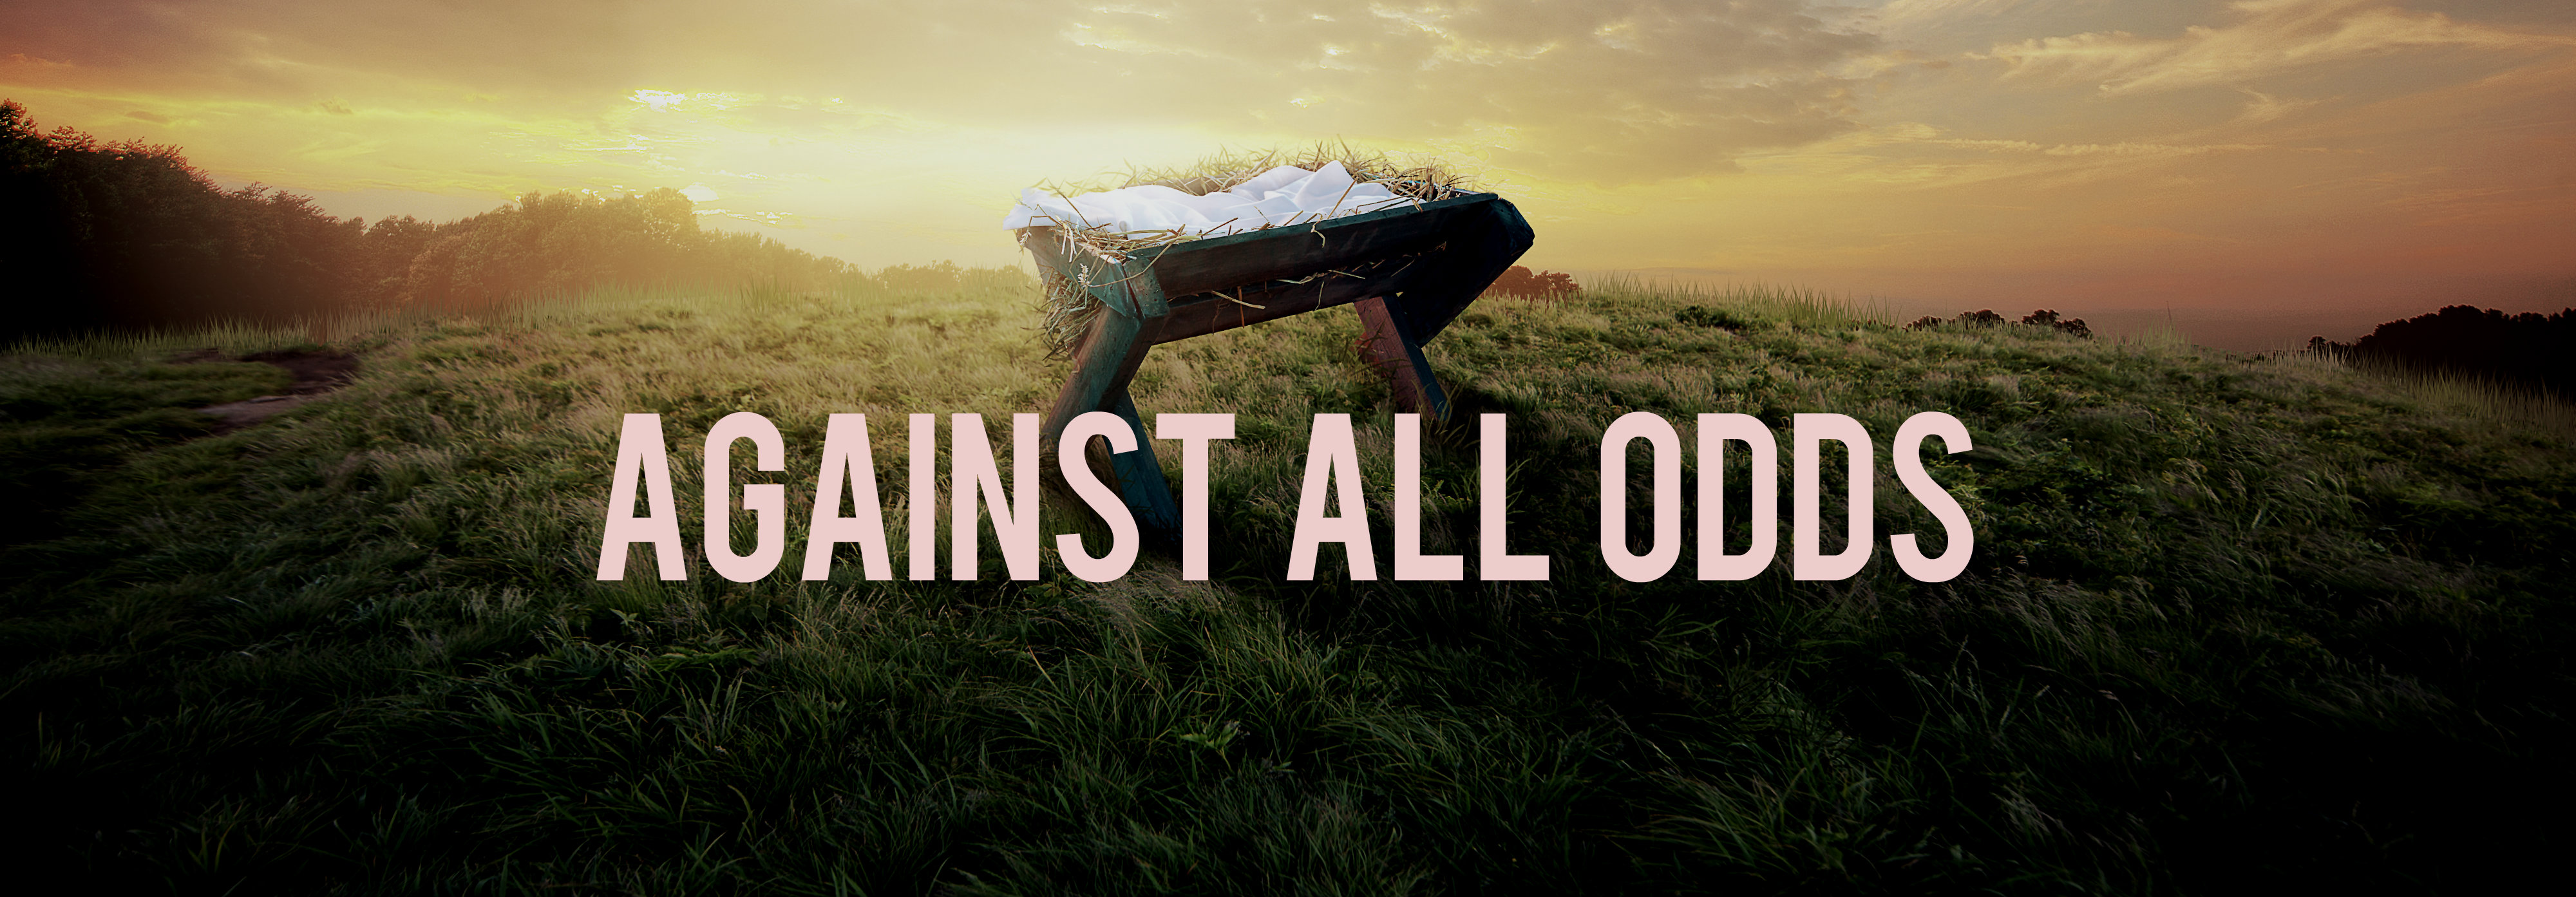 Against the odds photo